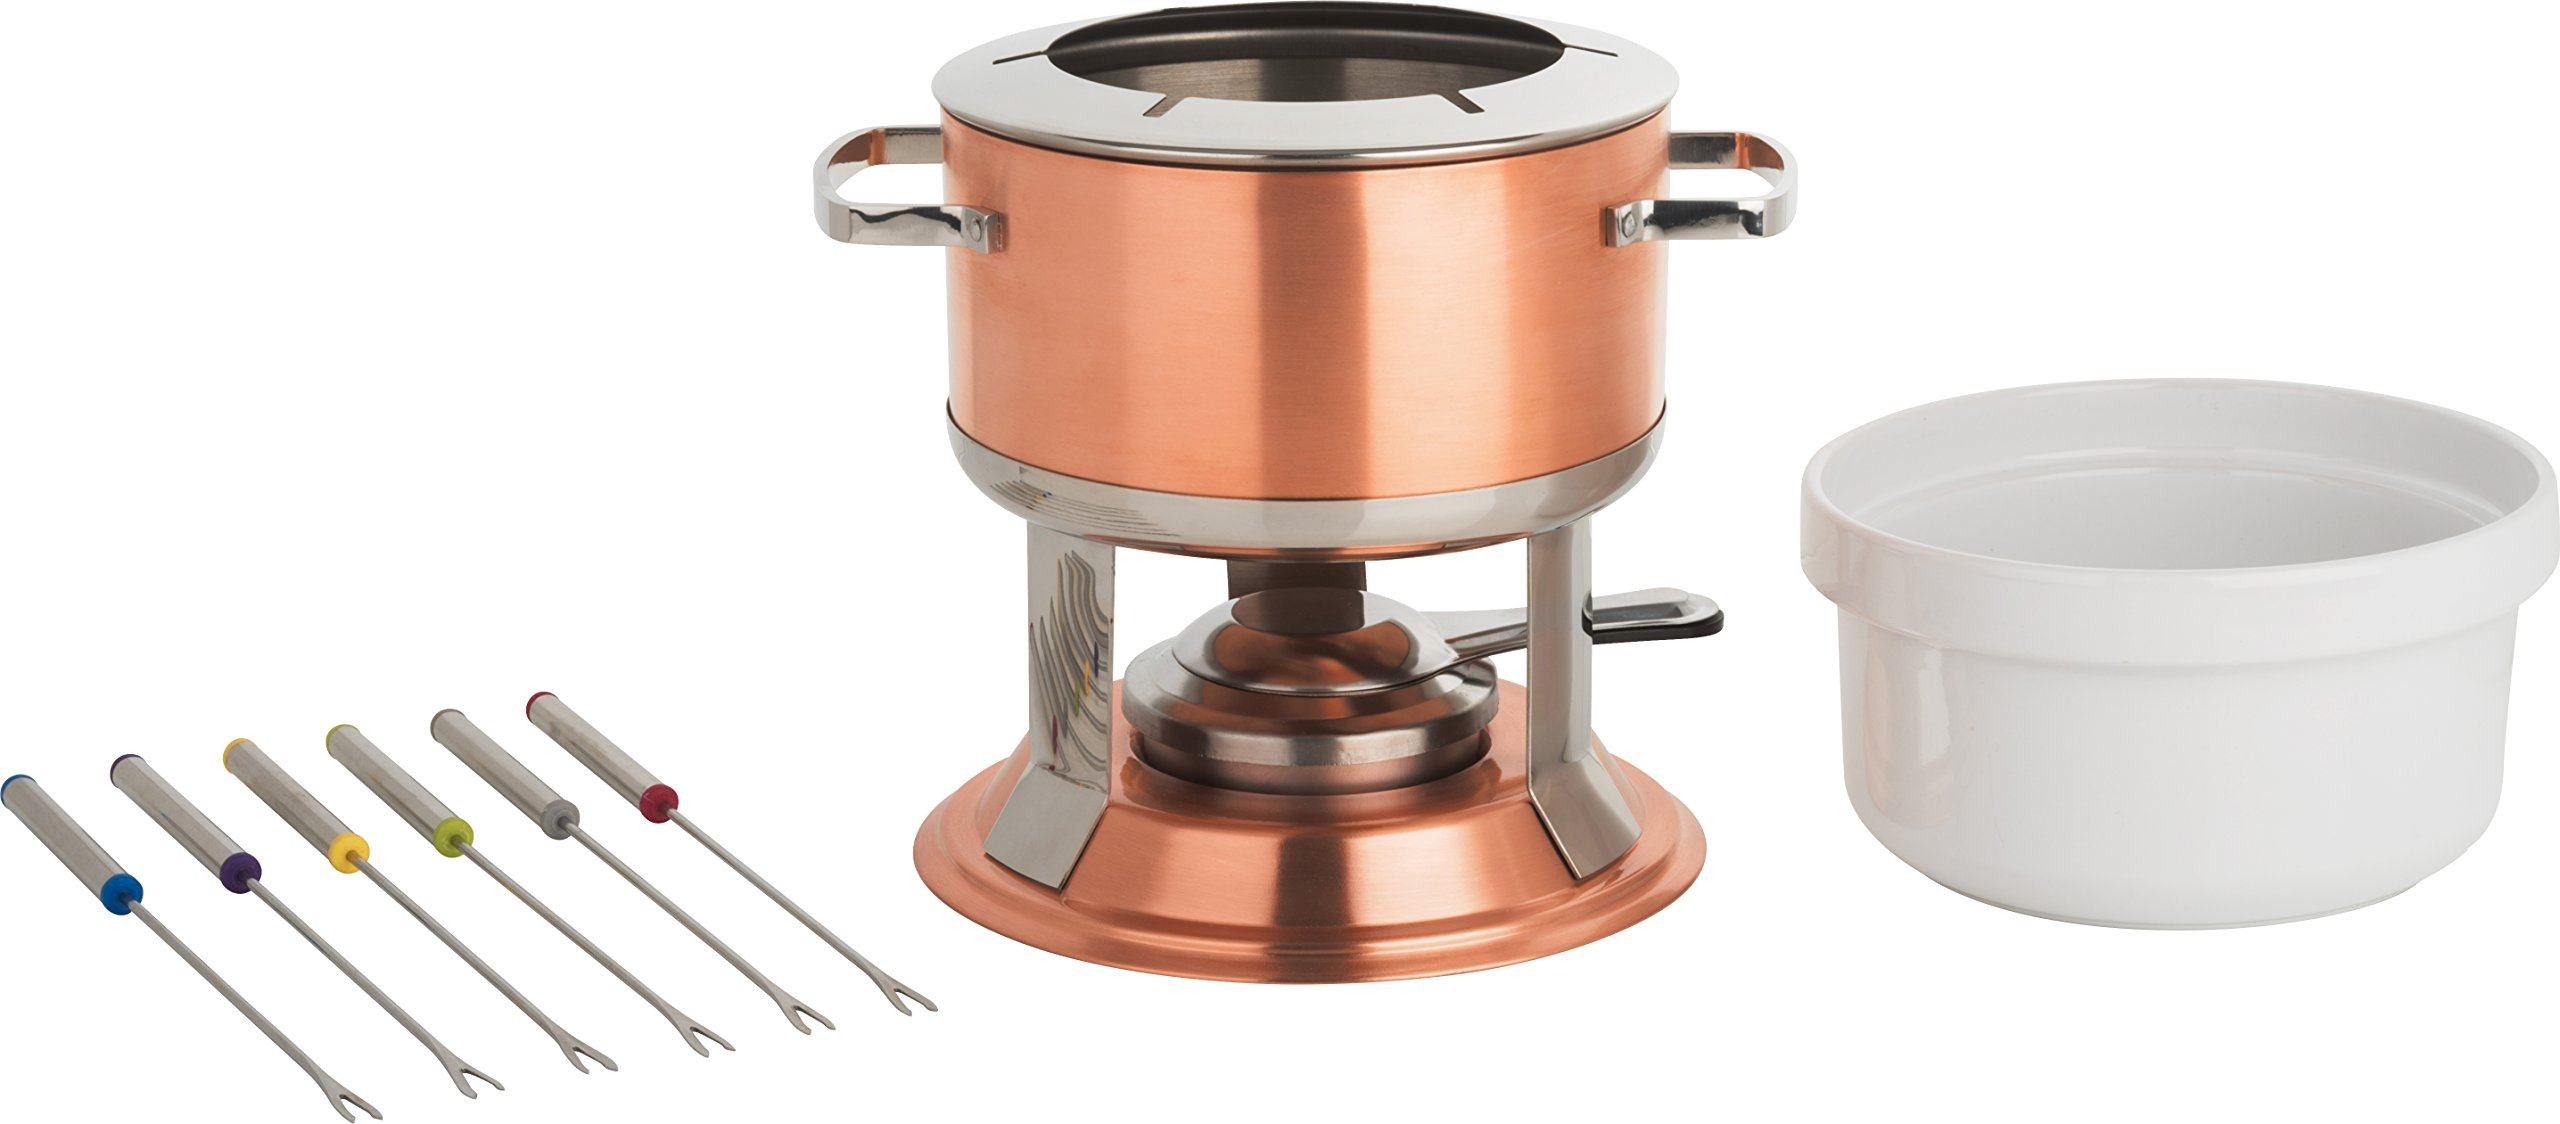 Trudeau Lumina 3-in-1 Fondue Set, 67 oz, Copper by Trudeau